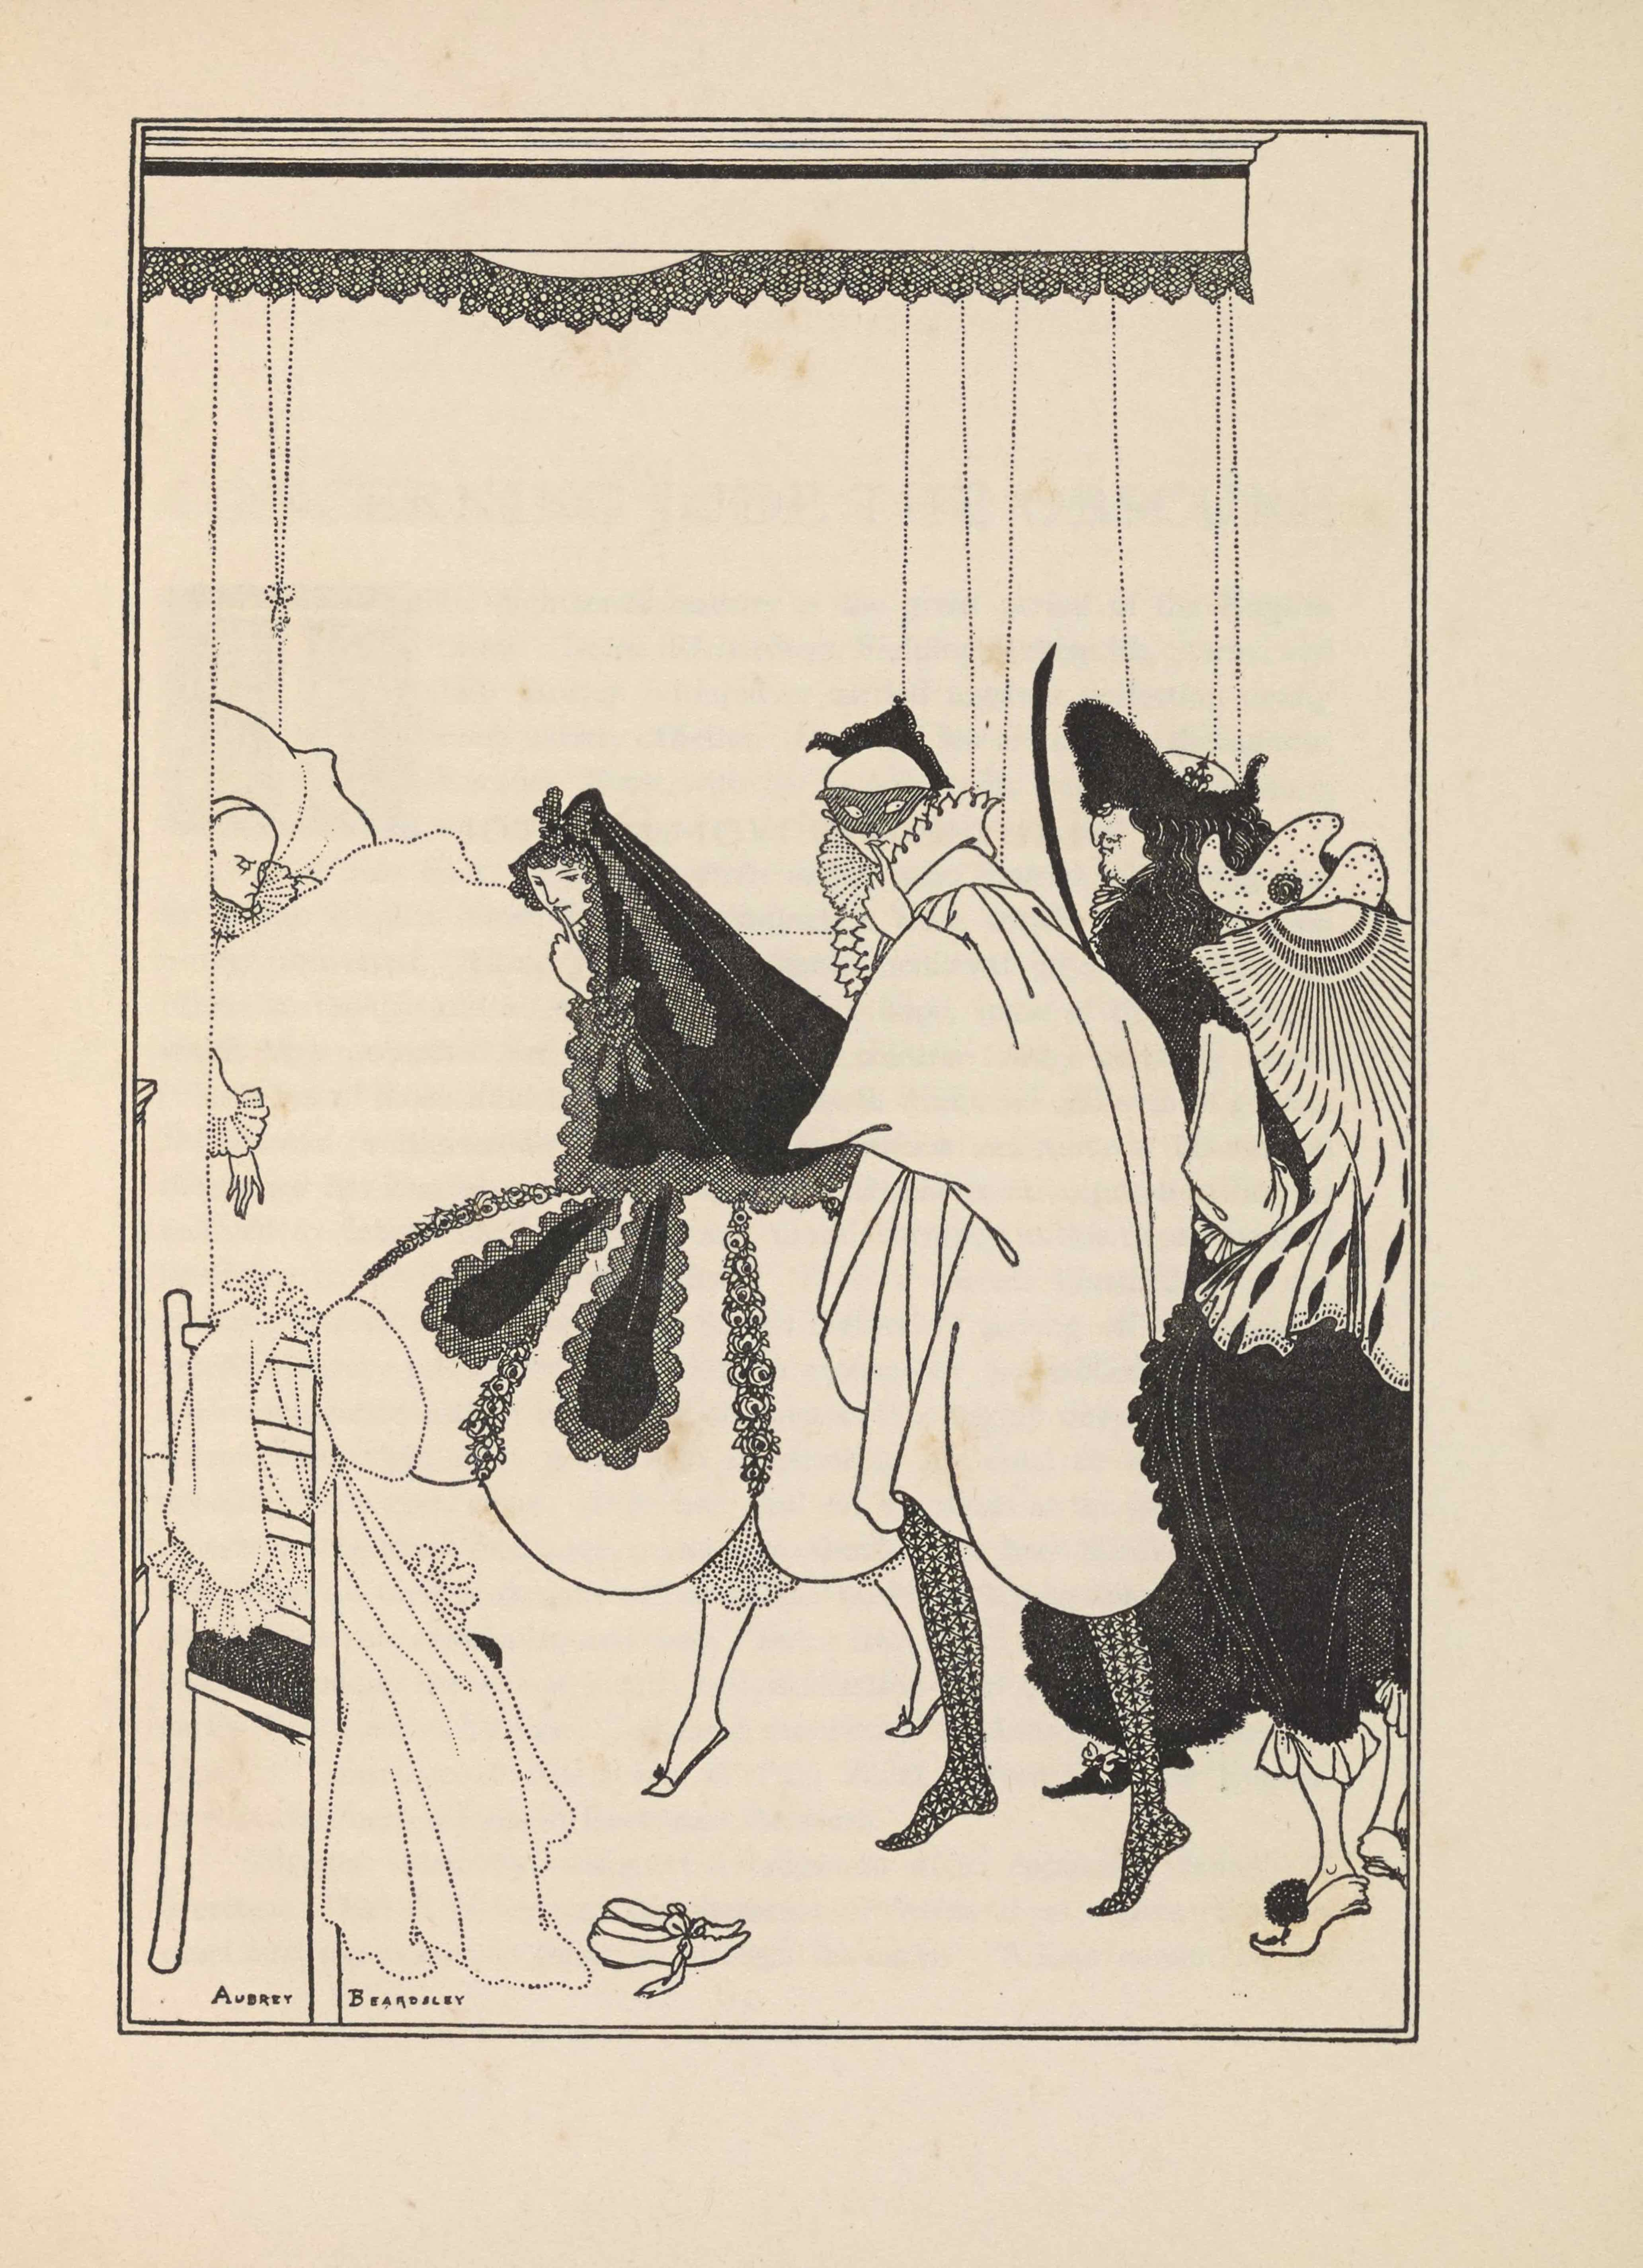 "The halftone reproduction of a pen-and-ink drawing by Beardsley is in portrait orientation, surrounded by a double-lined rectangular border. The illustration depicts a bedroom with the dead Pierrot (a sad clown) in bed in the background, and other stock figures from the commedia dell'arte in the foreground: Columbine (a perky maid servant), Arlecchino (Harlequin), Pantalone (a greedy old man), and Il Dottoro (a know-it-all doctor). In the bottom left corner is the artist's signature: ""Aubrey Beardsley,"" with the first and last name separated by the back right leg of a wooden chair. The chair sits in the left side of the foreground, facing towards the centre of the scene, with only the back two legs visible, as the seat is heaped with items of clothing. The back of the chair has four horizontal rails connecting the back legs; the bottom one supports the black chair seat. Pierrot's frock hangs over the back of the chair, flowing over the seat and on to the ground. The frock is sketched with small dotted lines that depict edges and folds in the fabric. The frock has ruffles visible at its collar and around the sleeve cuffs, all made via the same technique of dots. Hanging off the top of the right chair back is a pierrot cap made of the same dot pattern. On the floor beside the frock is a pair of slippers with laces tied in bows. The midsection of the image is taken up by five figures. The deceased Pierrot in the background lays covered in a blanket made of the same dot pattern. He is wearing a frock with ruffles at the collar and sleeves; his right arm rests atop the blanket. Pierrot's head rests against a headboard, although only the right half of the headboard is visible as the fold of a curtain blocks off the left side. There are more bed curtains in the background created by dotted lines, hanging from the lacey valance of the canopy. A woman (Columbine) stands over Pierrot's body, leaning forward over his deathbed but with her face is turned to the left to face the viewer. She is holding her left index finger against her lower lip as if to shush the viewer. Her black veil extends down her back, along its perimeter there is a thick cross hatched border. Several ribbons of the same black material stream off the bonnet and over her skirt. Her skirt is formed in large decorated curved pieces. At each curve in the bottom of the skirt there is a series of tightly packed flowers that form a line going up to the woman's waist. The lower half of her legs stretch out from under her skirt; she is wearing dot patterned pantalets that reach down to her calves. She is wearing slippers. The man to her right, Arlecchino or Harlequin, is closer to the audience. His legs are pointed to the left towards Pierrot but his upper body is facing the audience. He is wearing stockings made of a floral design. He is making the same gesture as the woman with his left index finger against his lower lip. He is wearing a mask, white frock with a ruffled collar, and a tri-cornered black hat. The man directly behind the Harlequin is Iil Dottoro, the doctor, who stands in profile facing left, with the majority of his figure hidden behind the third and fifth figures. He has black dress shoes on with white laces tied in a bow. He is wearing a long black overcoat that extends down to his ankles, textured like fur. At his collar there are white ruffles. He has wisps of black facial hair on his chin and his nose hooks sharply down. He has flowing black hair that extends out of sight atop his overcoat. He has a hat on that has a wide brim at the front that extends upwards; at the back of his head the brim curves upwards again but ends in a point instead of widening. He is the only one of the four standing figures that rests flat footed; the others stand on the balls of their feet. At the rightmost edge of the image and closest to the viewer stands the fifth and final figure. This man, Pantalone, has his back to the viewer, with his head turned to the left. The bridge of his nose and left eye are the only visible parts of his face, the rest obscured by his left shoulder. He is wearing a white three-cornered hat patterned with dots in groups of three. He is wearing black pantaloons with white ruffles, slippers, and a decorated cape."